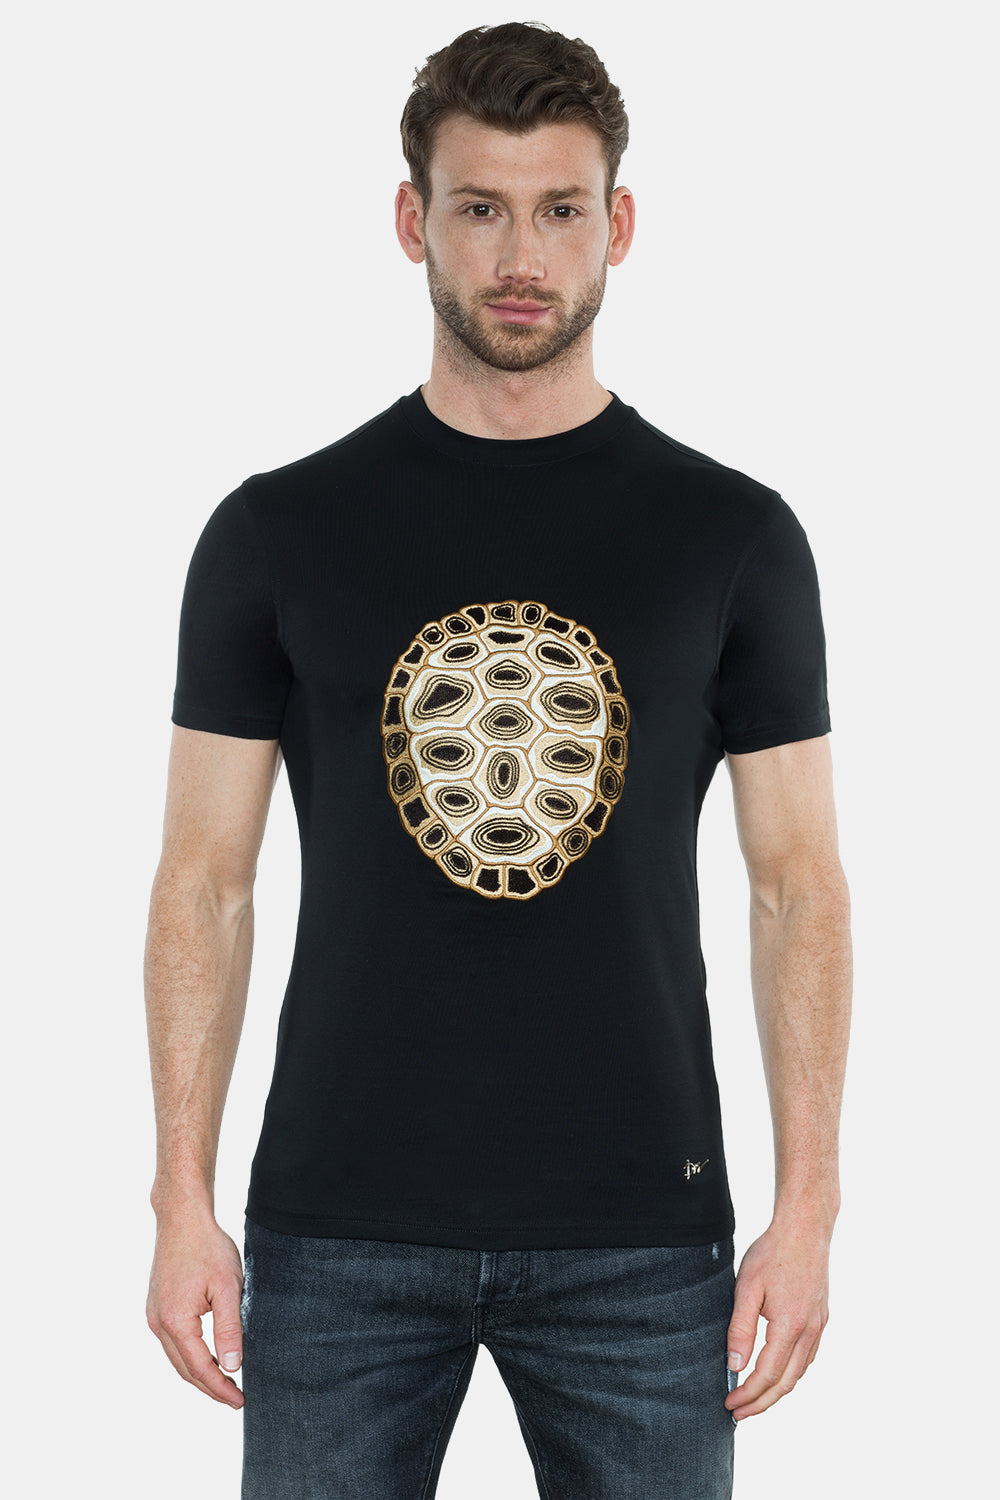 TURTLE SHIELD EMBROIRDERY T-SHIRT - DIMORAL OFFICIAL